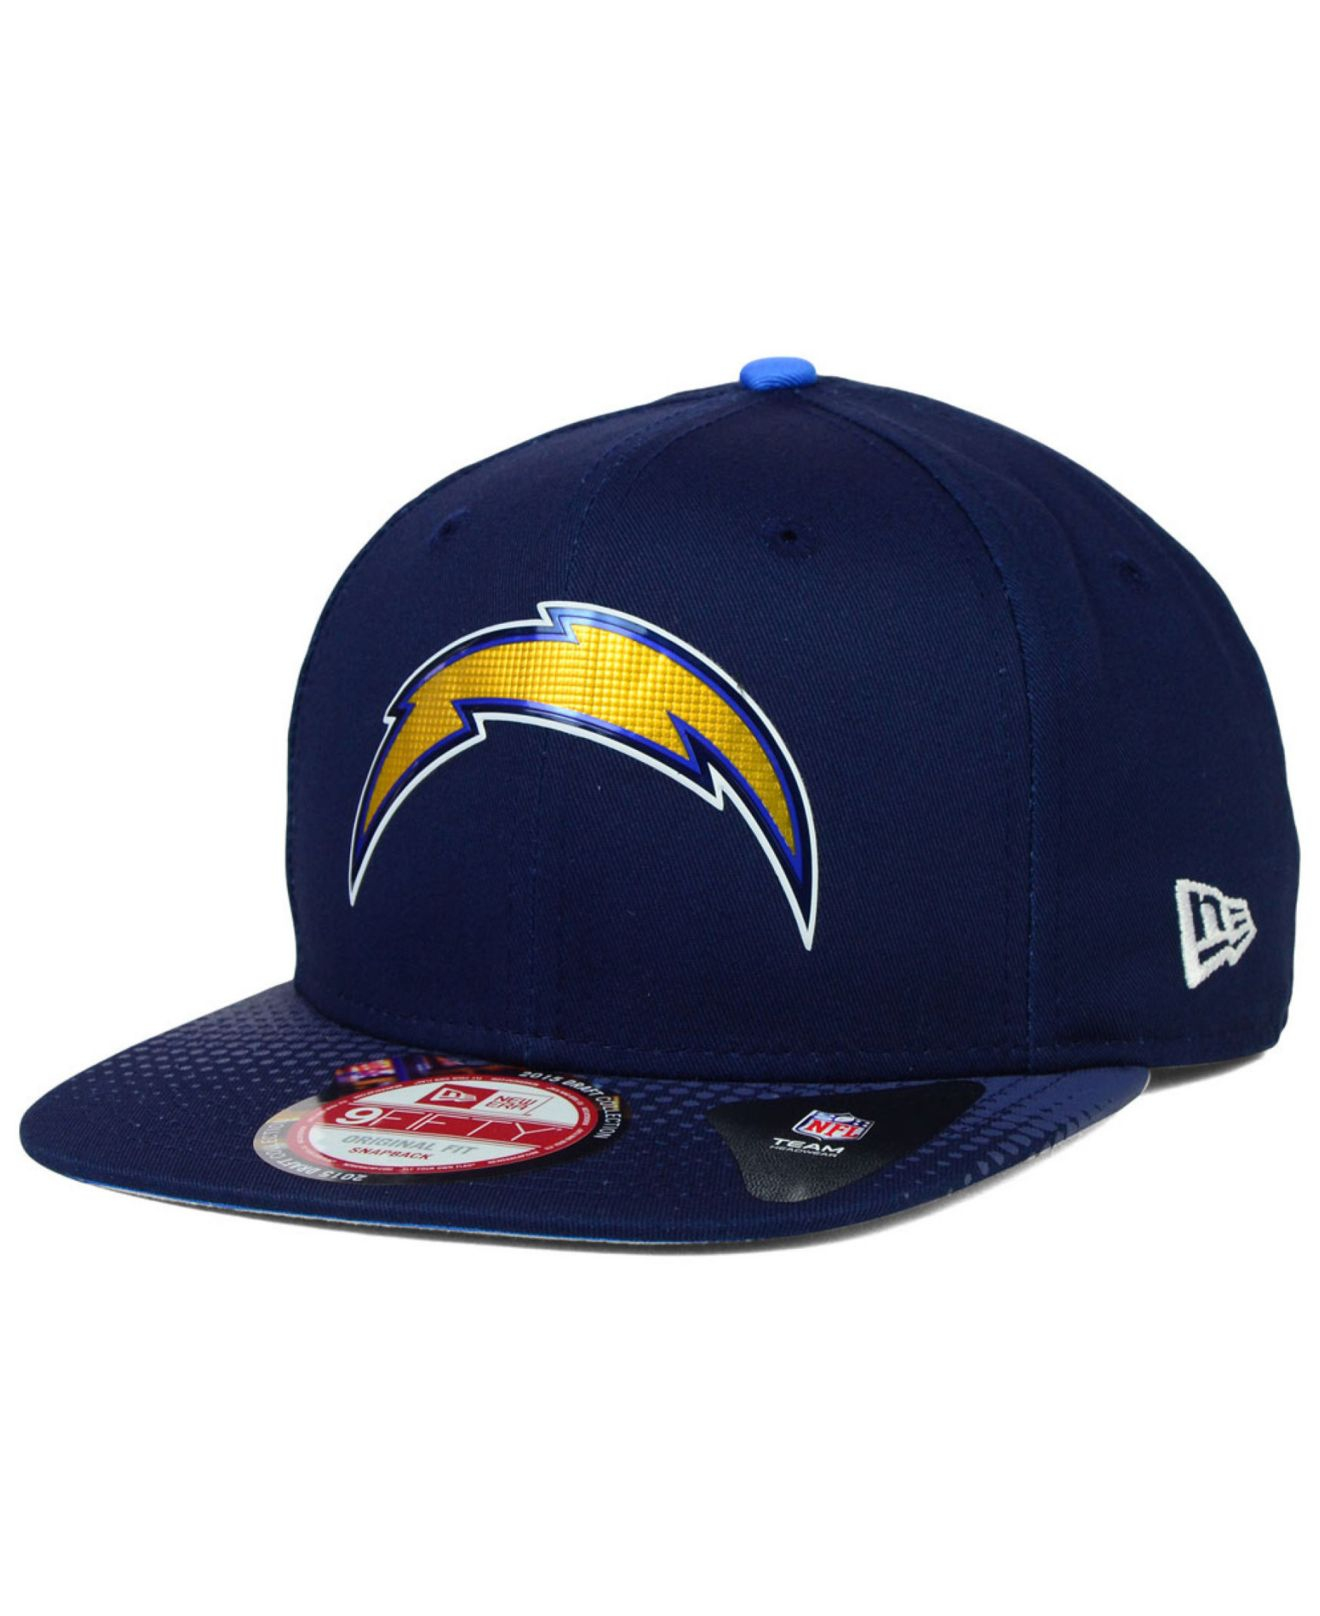 reputable site f6166 7472e Lyst - KTZ San Diego Chargers 2015 Nfl Draft 9fifty Snapback Cap in ...